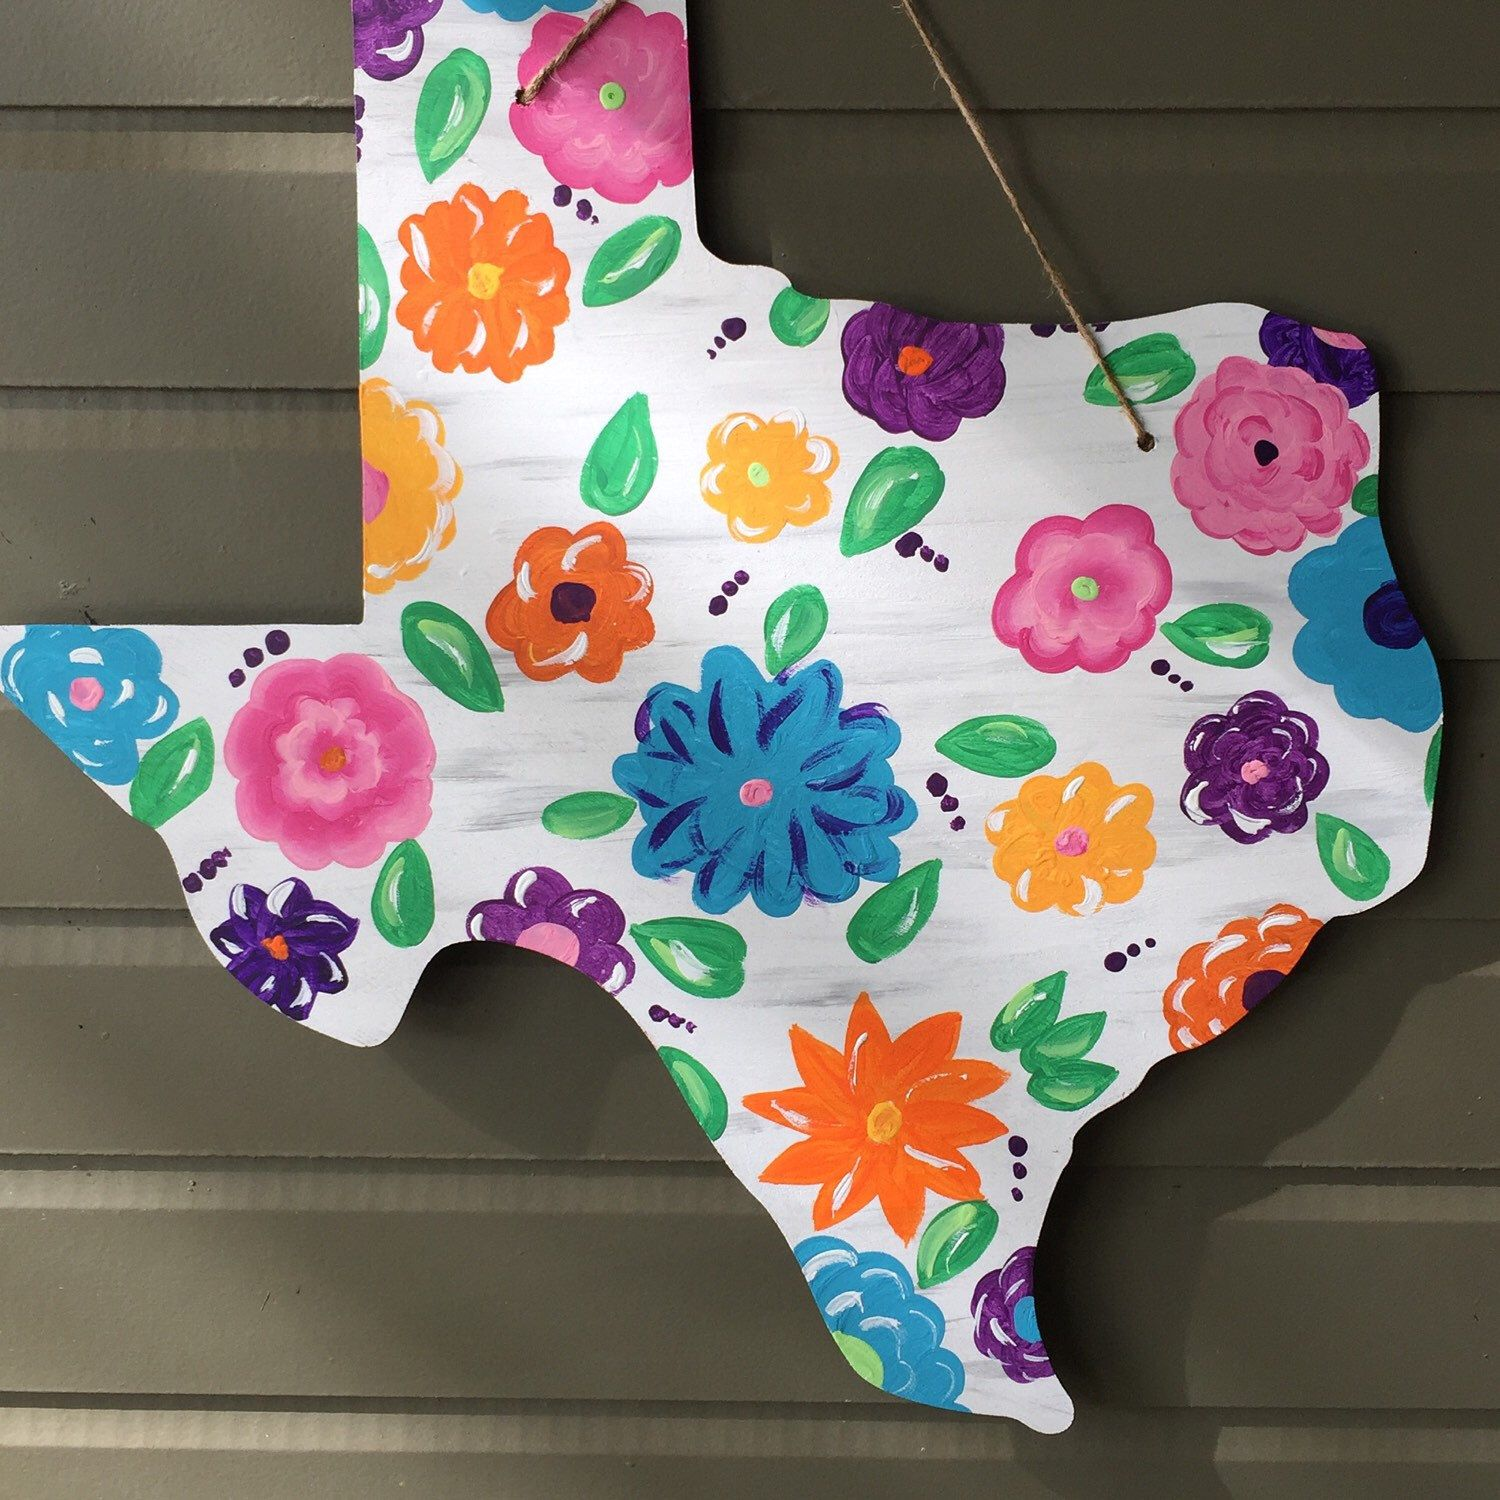 Distressed Floral Texas Wood Door Hanger by KMCWoodDesigns on Etsy https://www.etsy.com/listing/274937556/distressed-floral-texas-wood-door-hanger